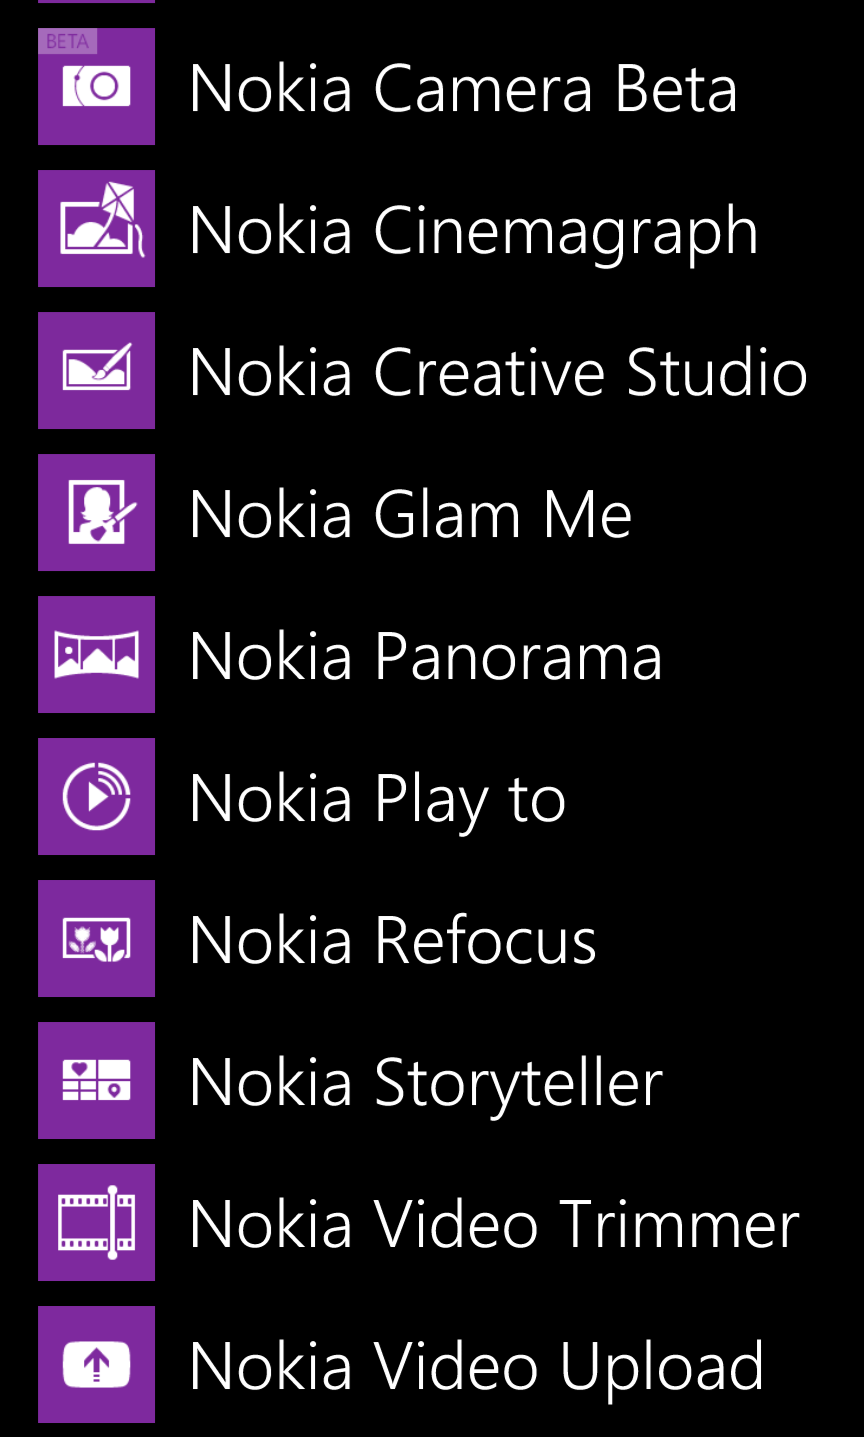 Nokia's photography apps are out of control!